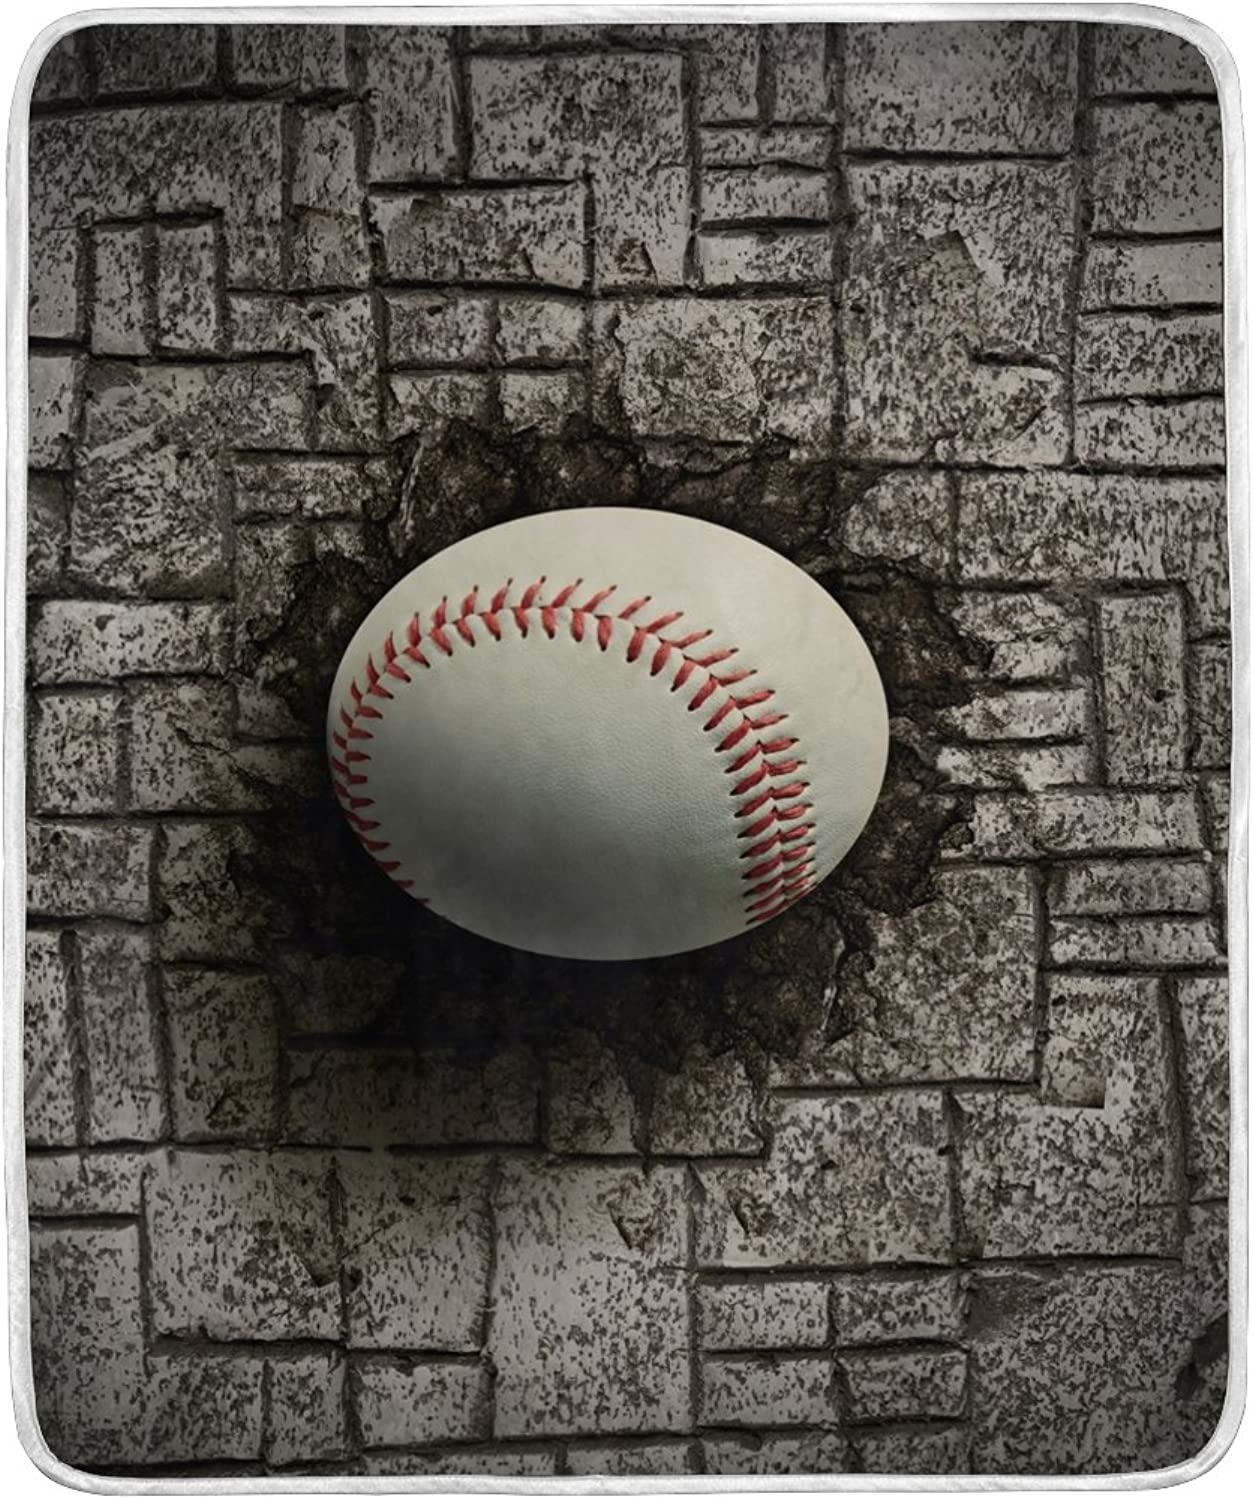 ALAZA Home Decor Baseball Embedded in Brick Wall Sport Soft Warm Blanket for Bed Couch Sofa Lightweight Travelling Camping 60 x 50 inch Throw Size for Kids Boys Women